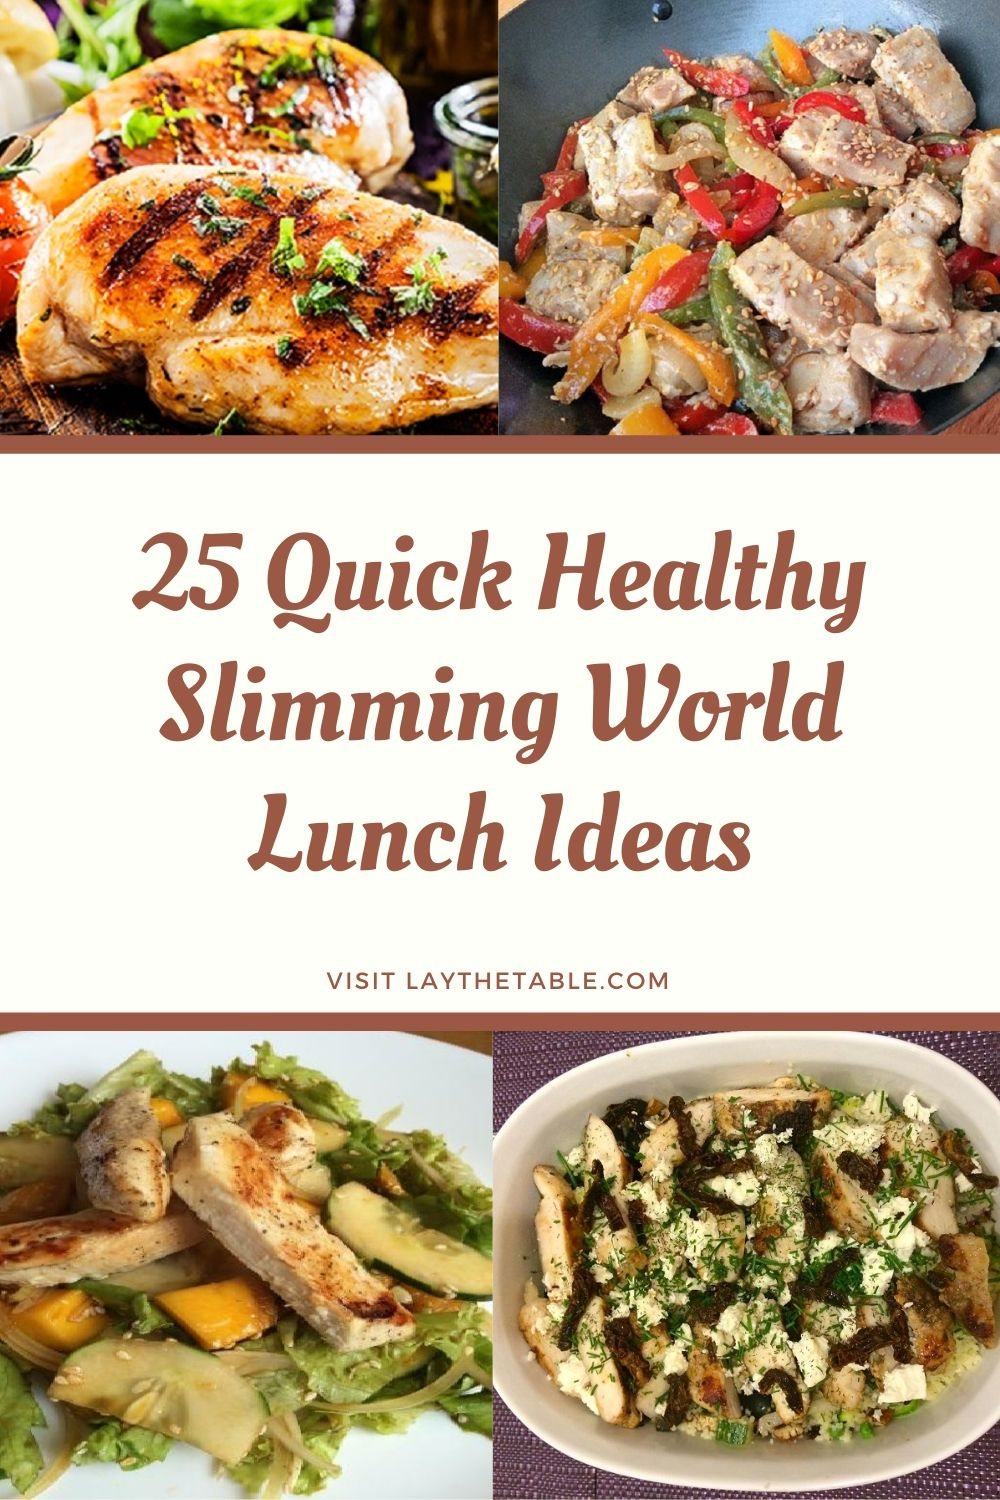 25-quick-healthy-slimming-world-lunch-ideas-7364630